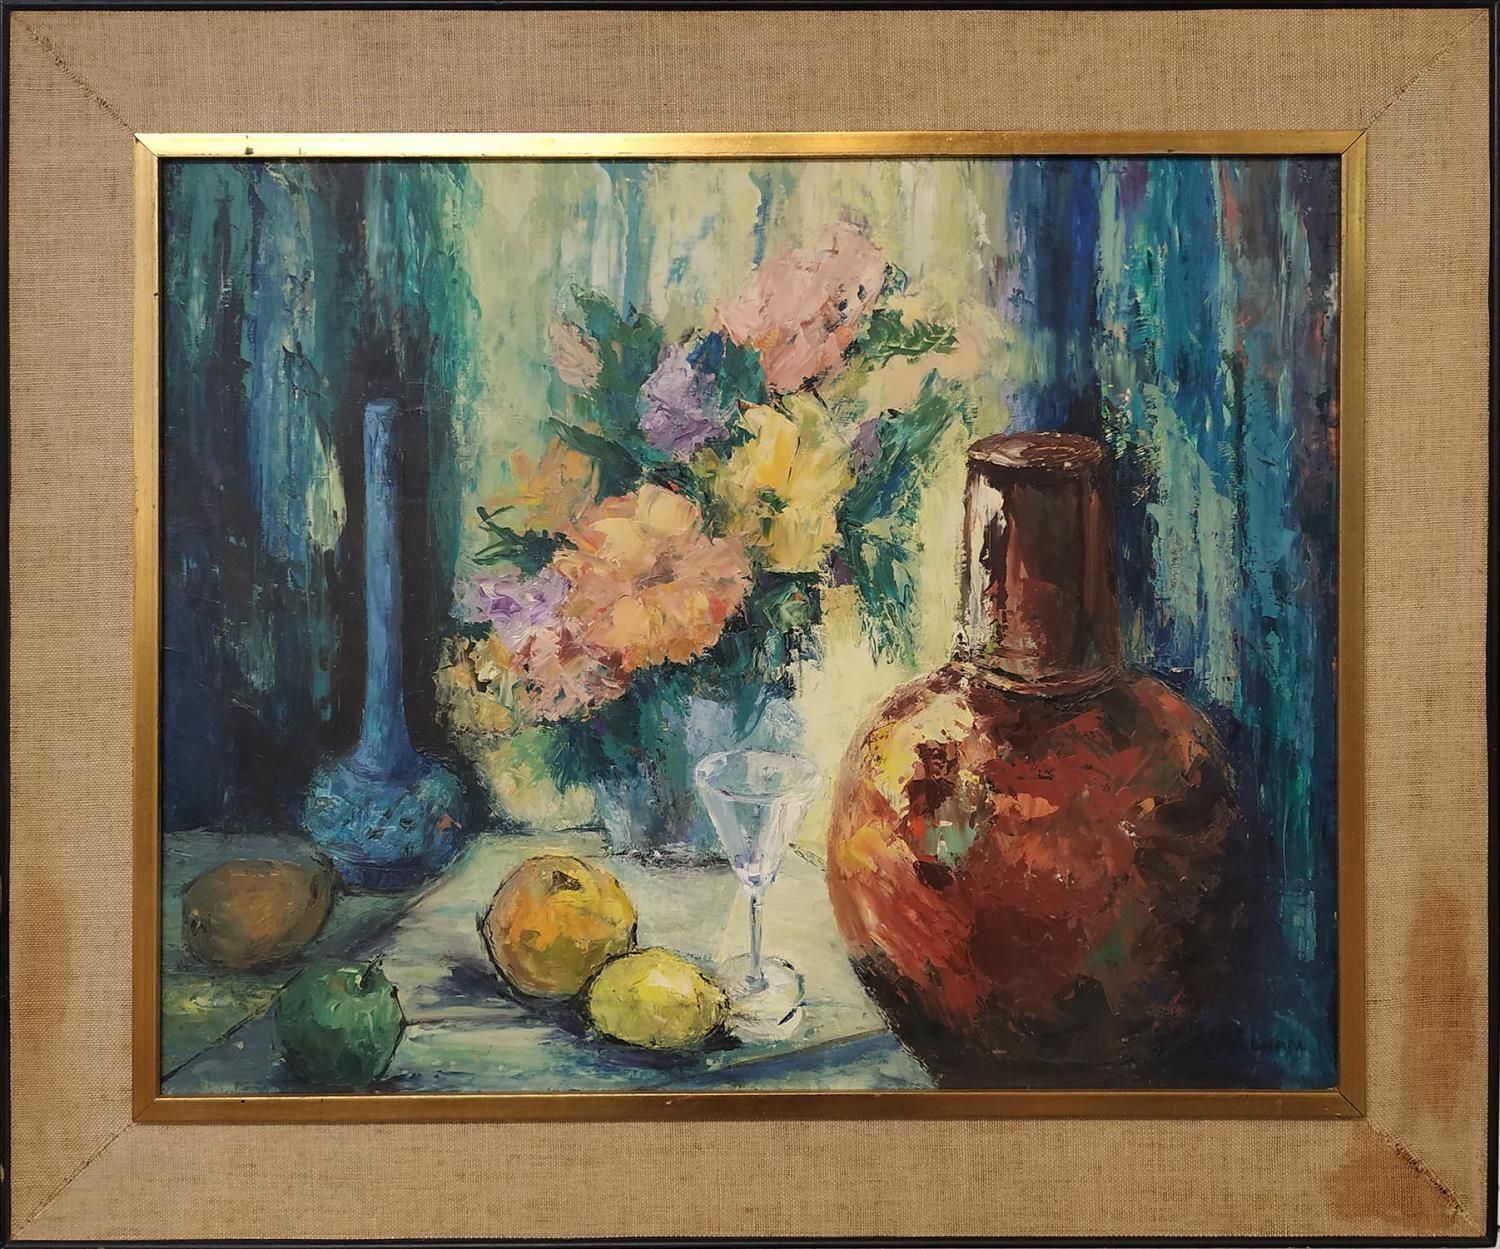 VAUGHAN (20th century) 'Still Life with Lemons and Jug', oil on board, signed and framed, 59cm x